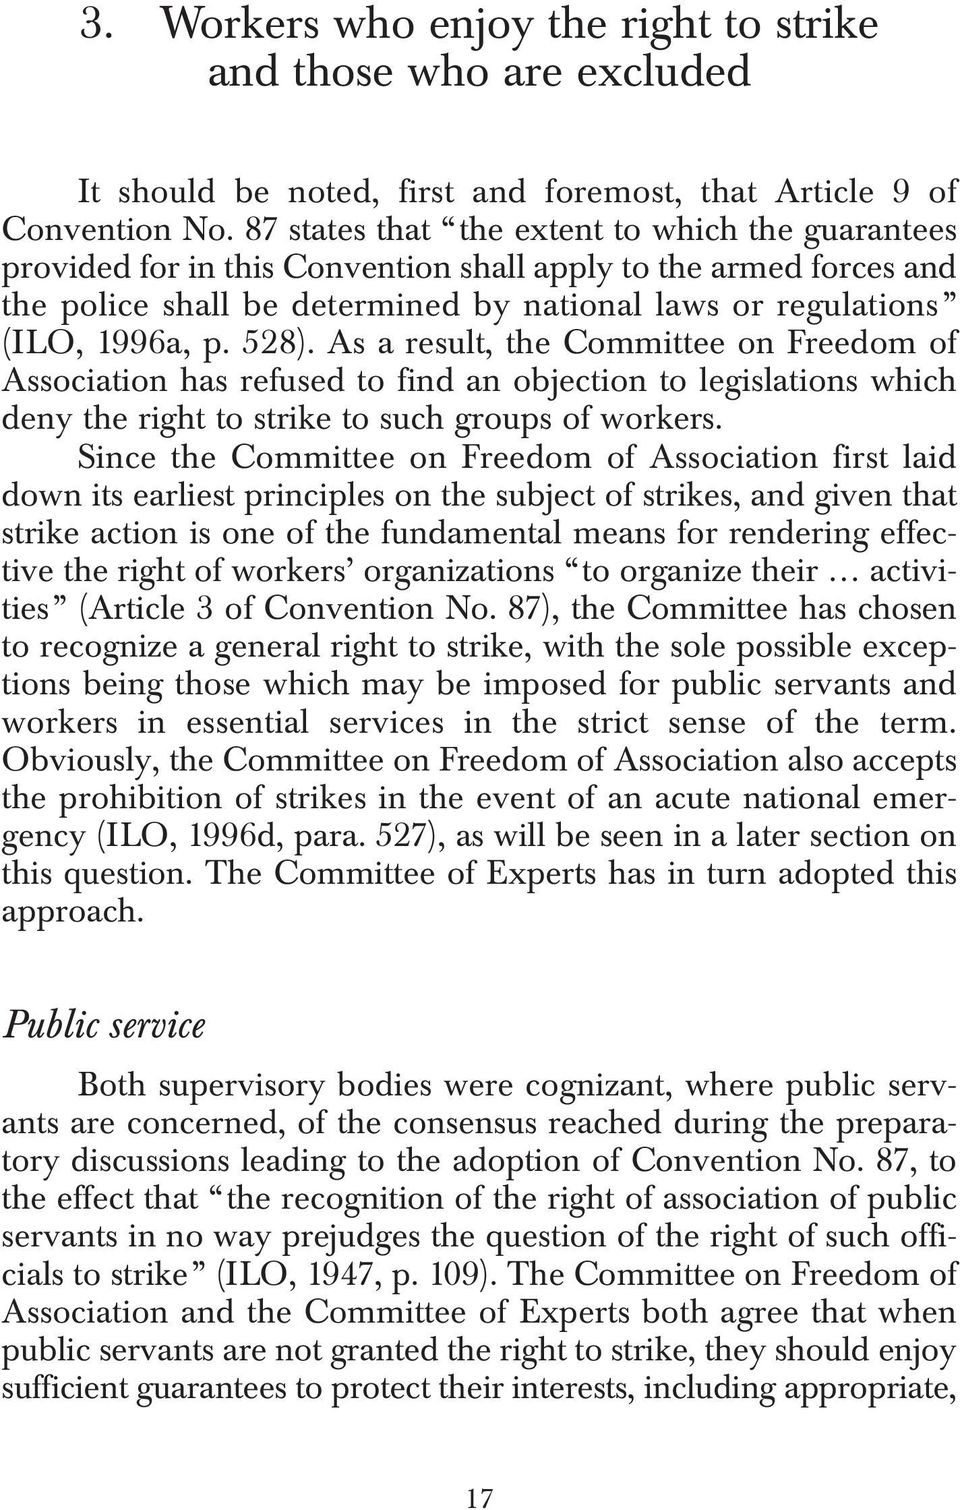 528). As a result, the Committee on Freedom of Association has refused to find an objection to legislations which deny the right to strike to such groups of workers.